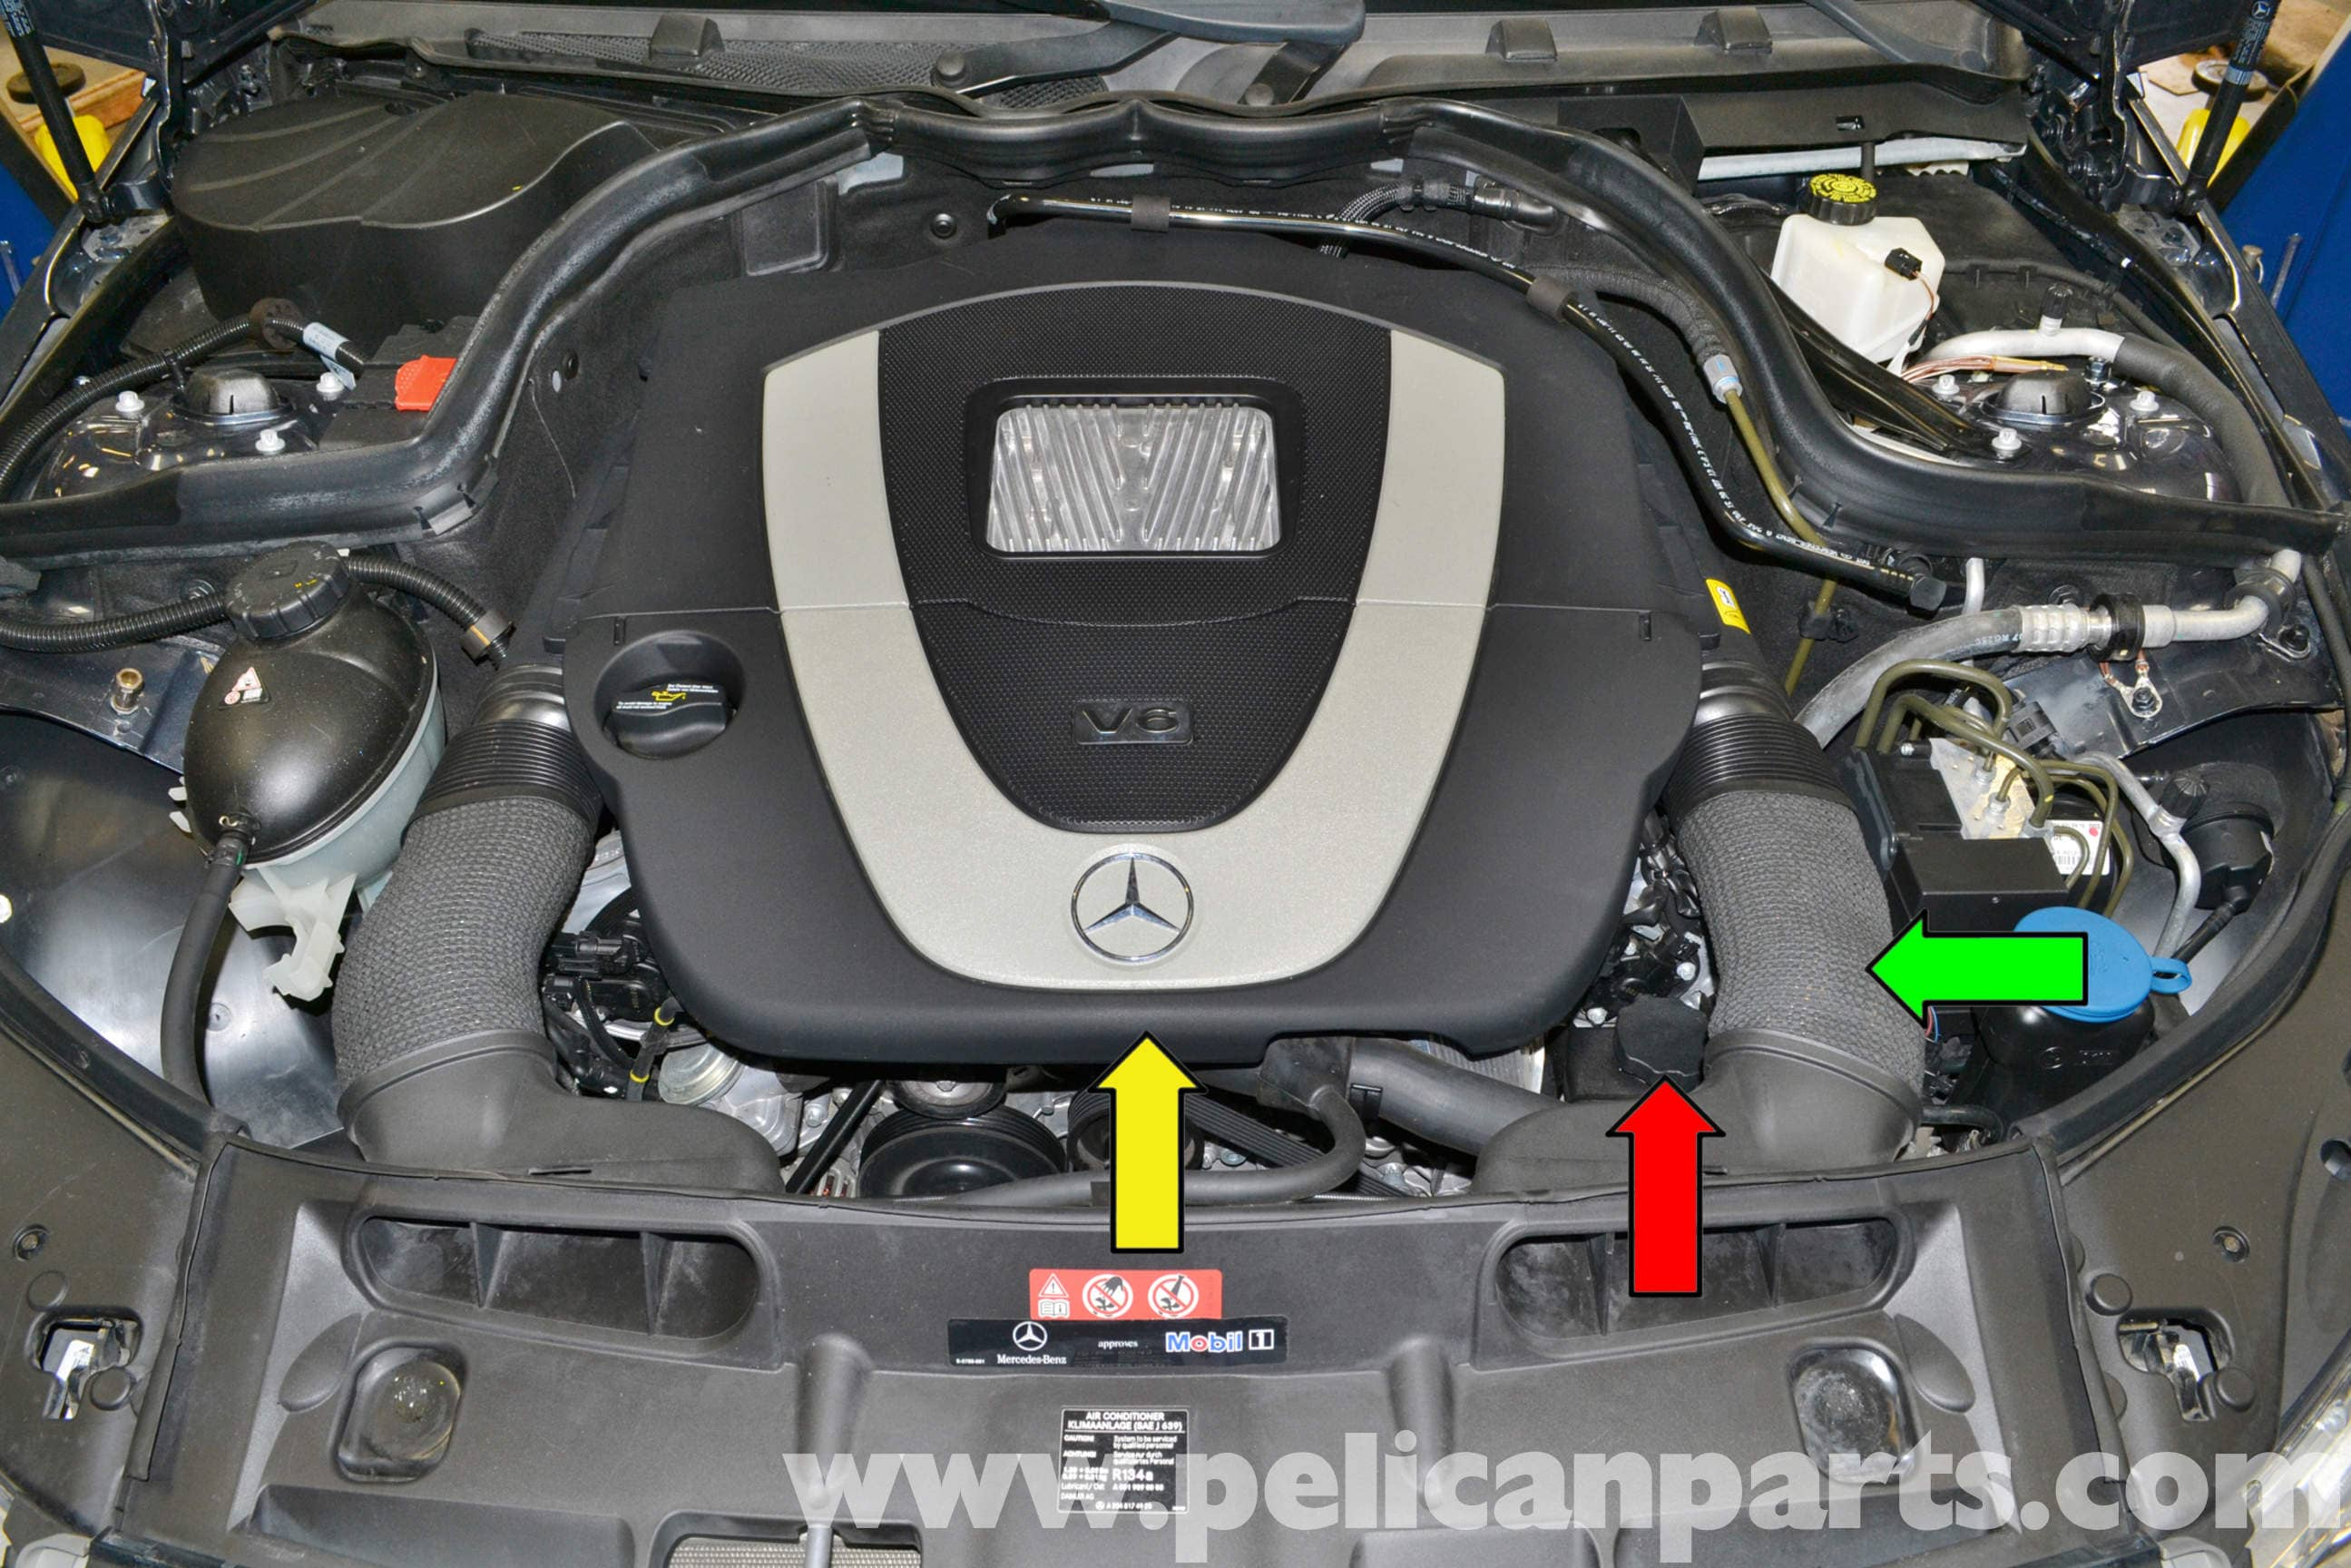 D Fuse Chart E Ccf further Airmatic Relay likewise C Db D A Ab A Adfe A likewise Pic as well Mercedes Benz C Class C Sport Pic X. on 2008 mercedes c300 4matic problems